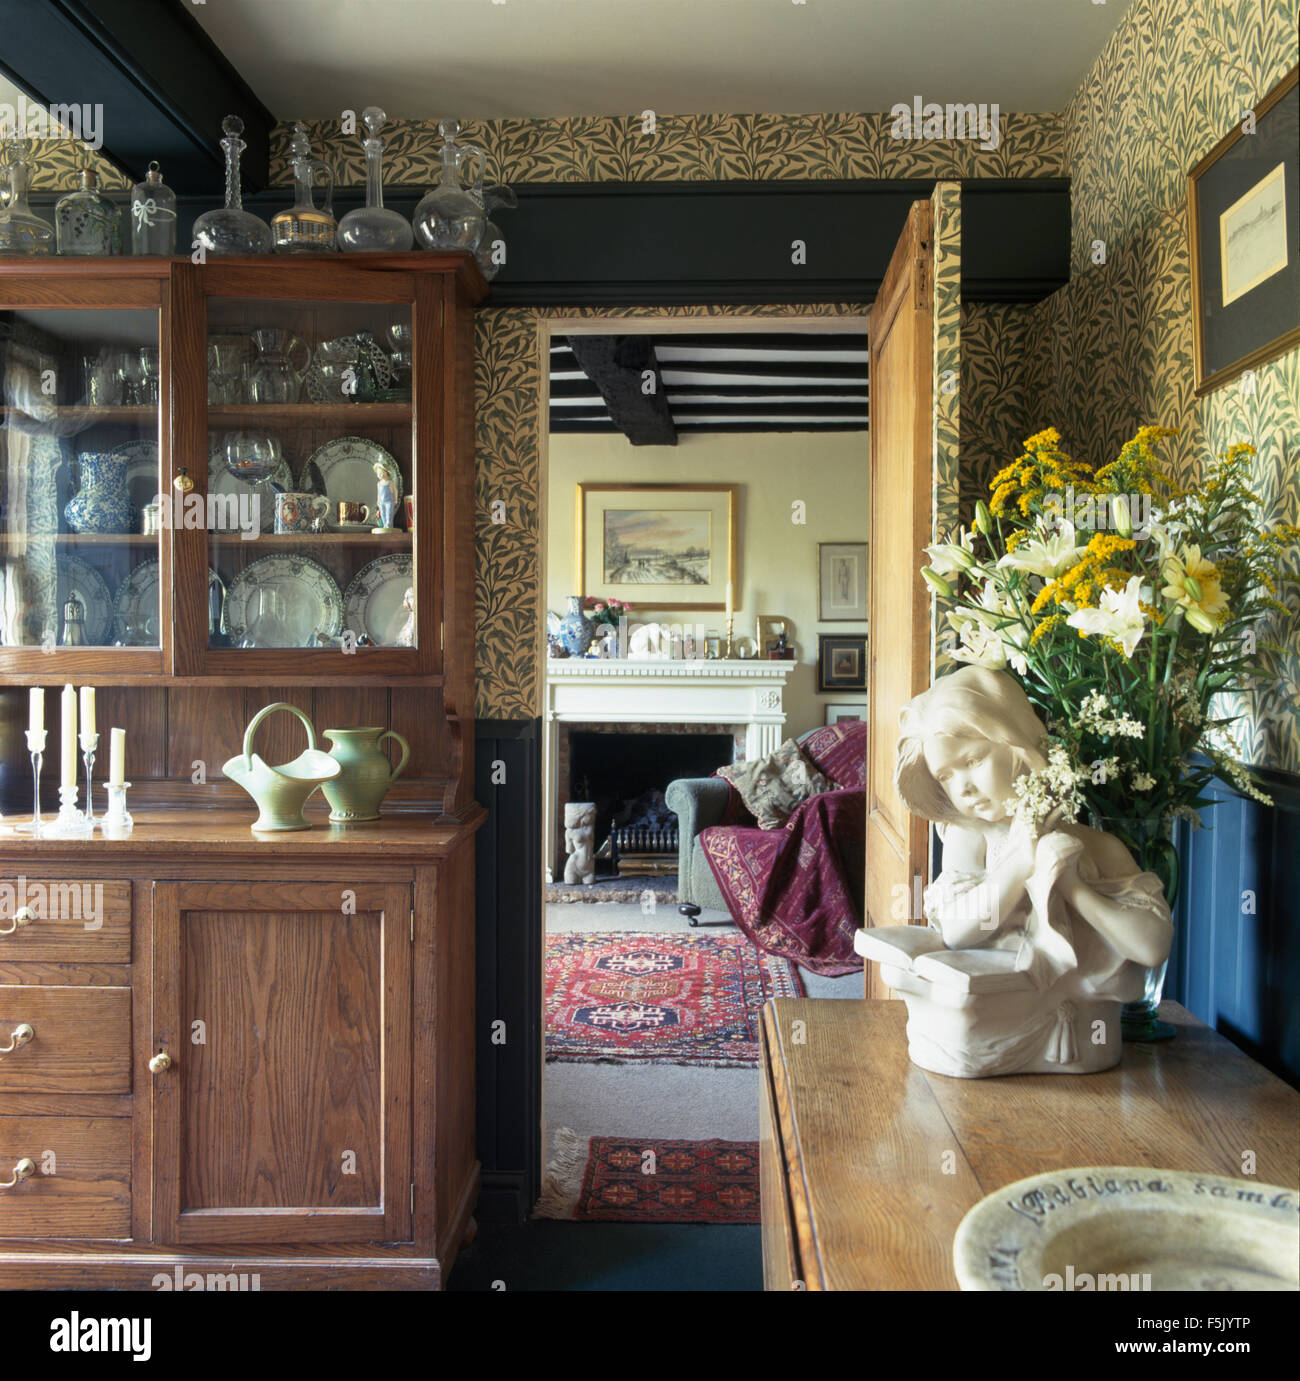 William Morris Green Willow Pattern Wallpaper In Old Fashioned Dining Room  With A Glass Front Dresser